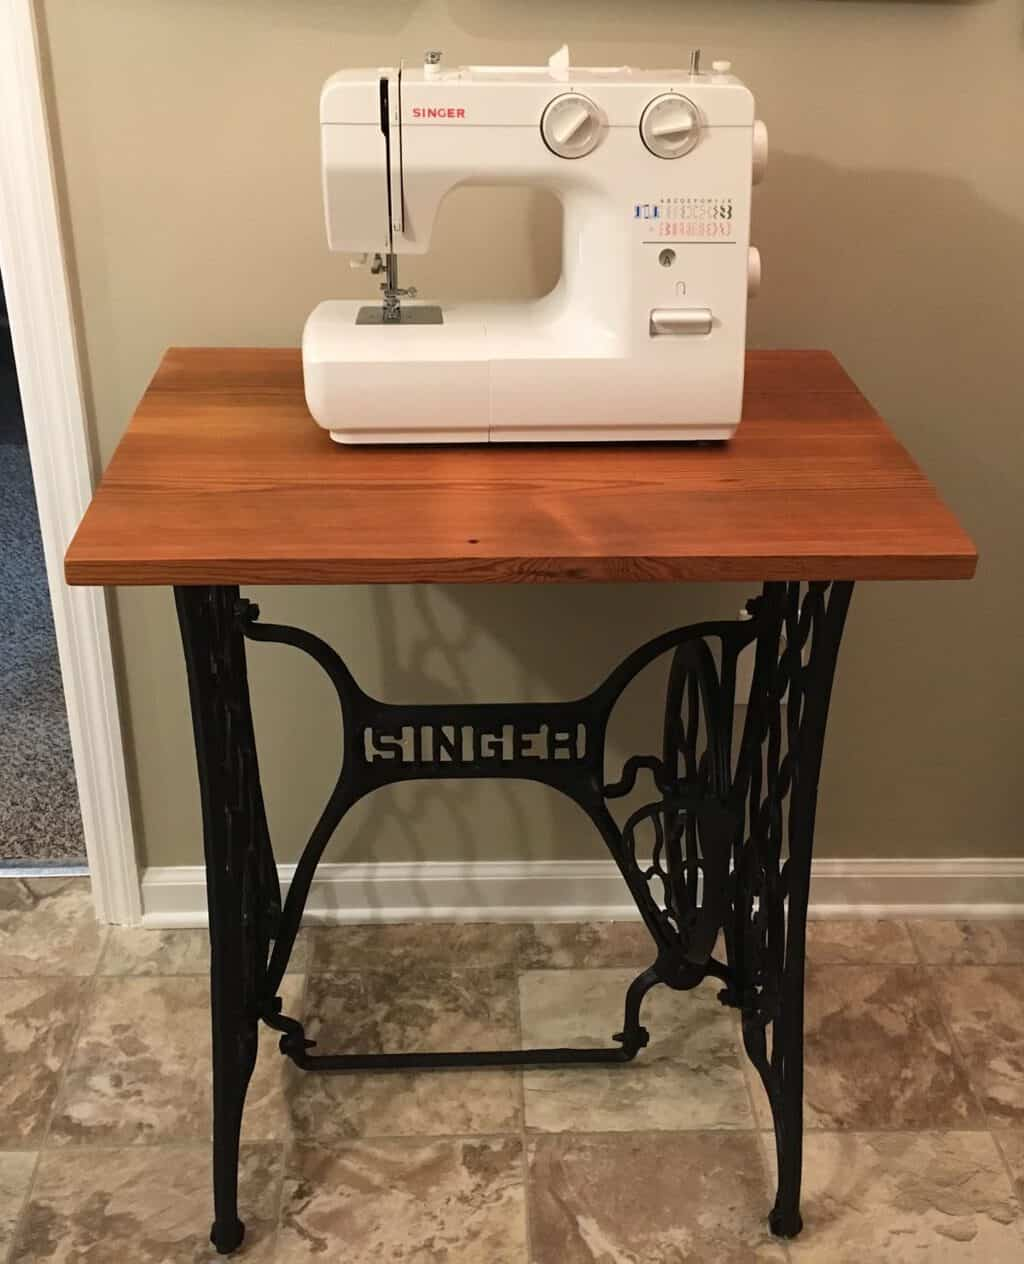 Making a Sewing Machine Table